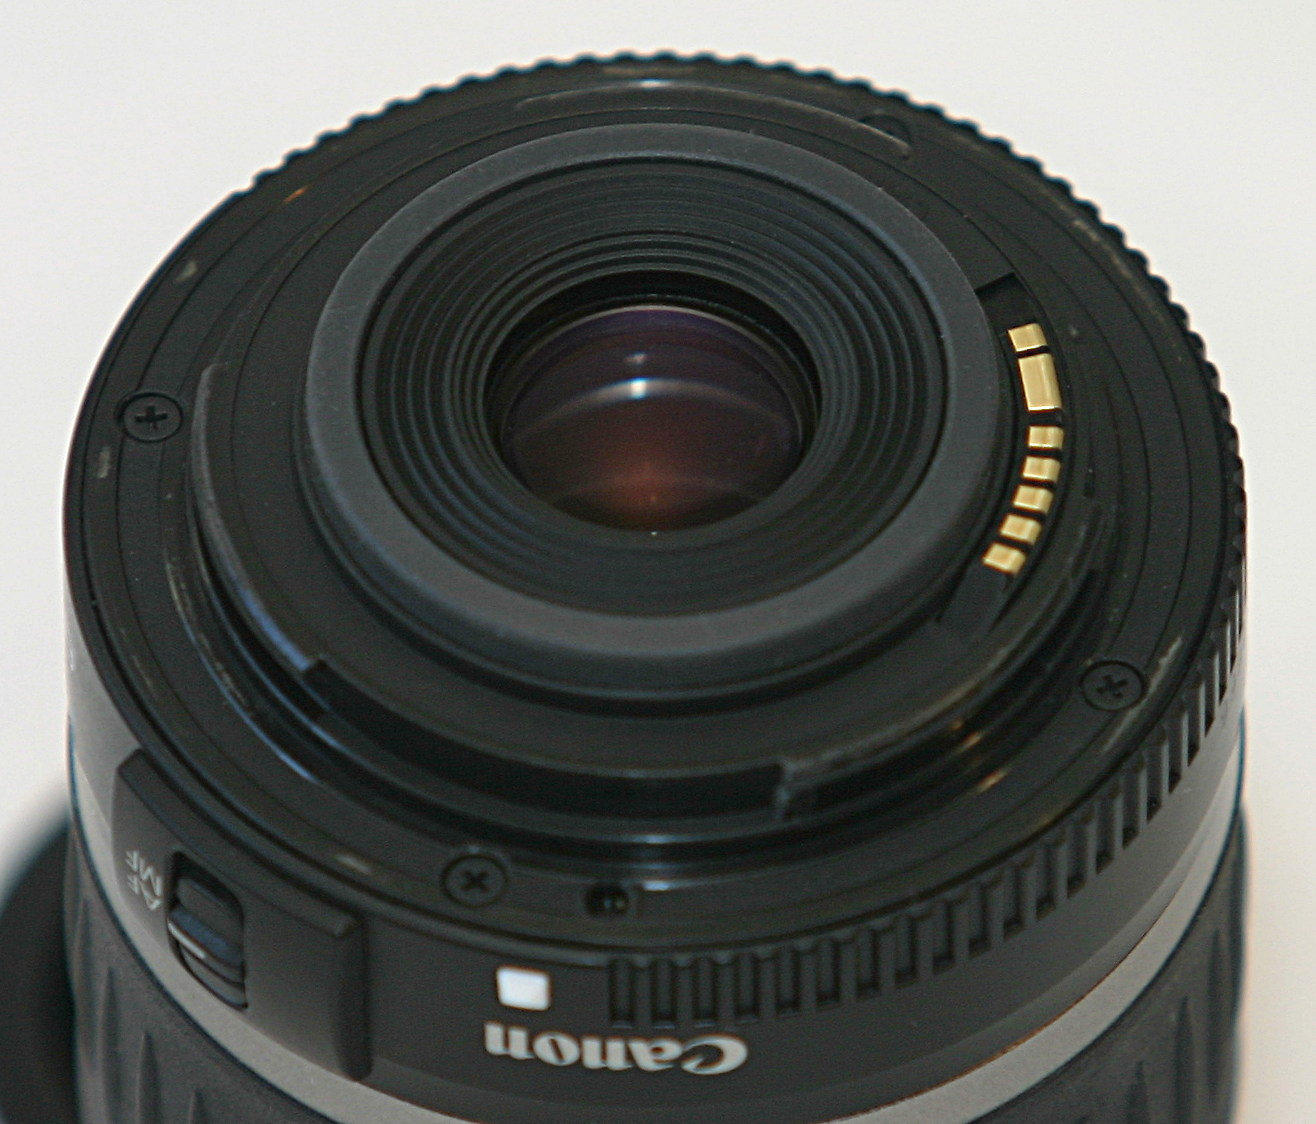 Canon Ef S Lens Mount Wikipedia Eos 700d Kit 18 135mm F 35 56 Is Stm